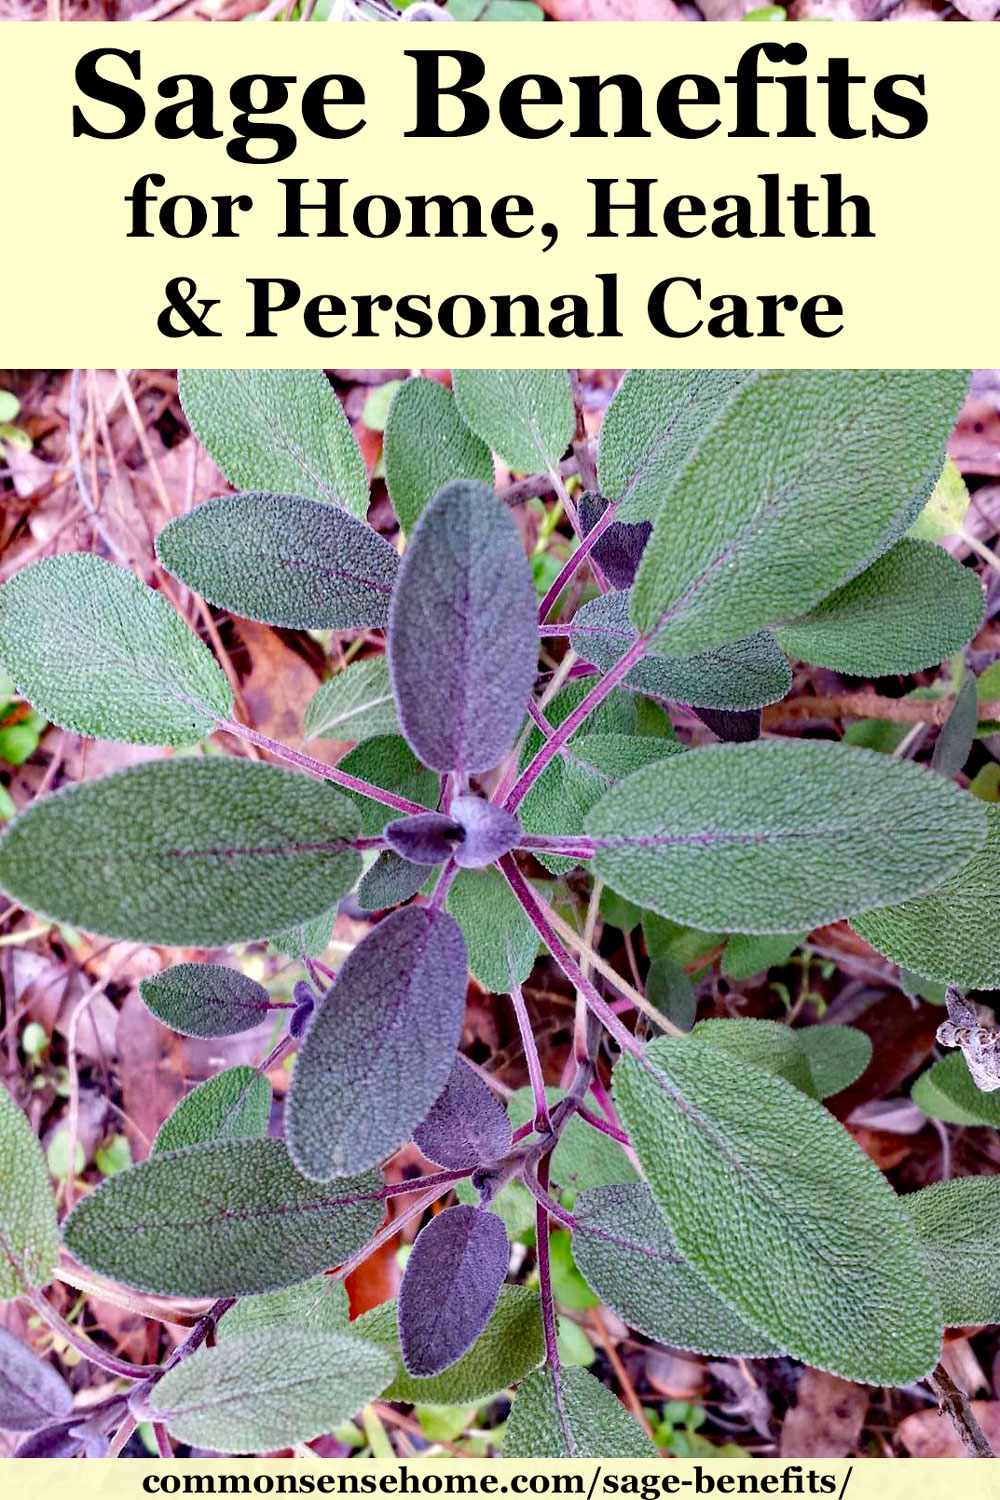 Sage Benefits for Home, Health and Personal Care